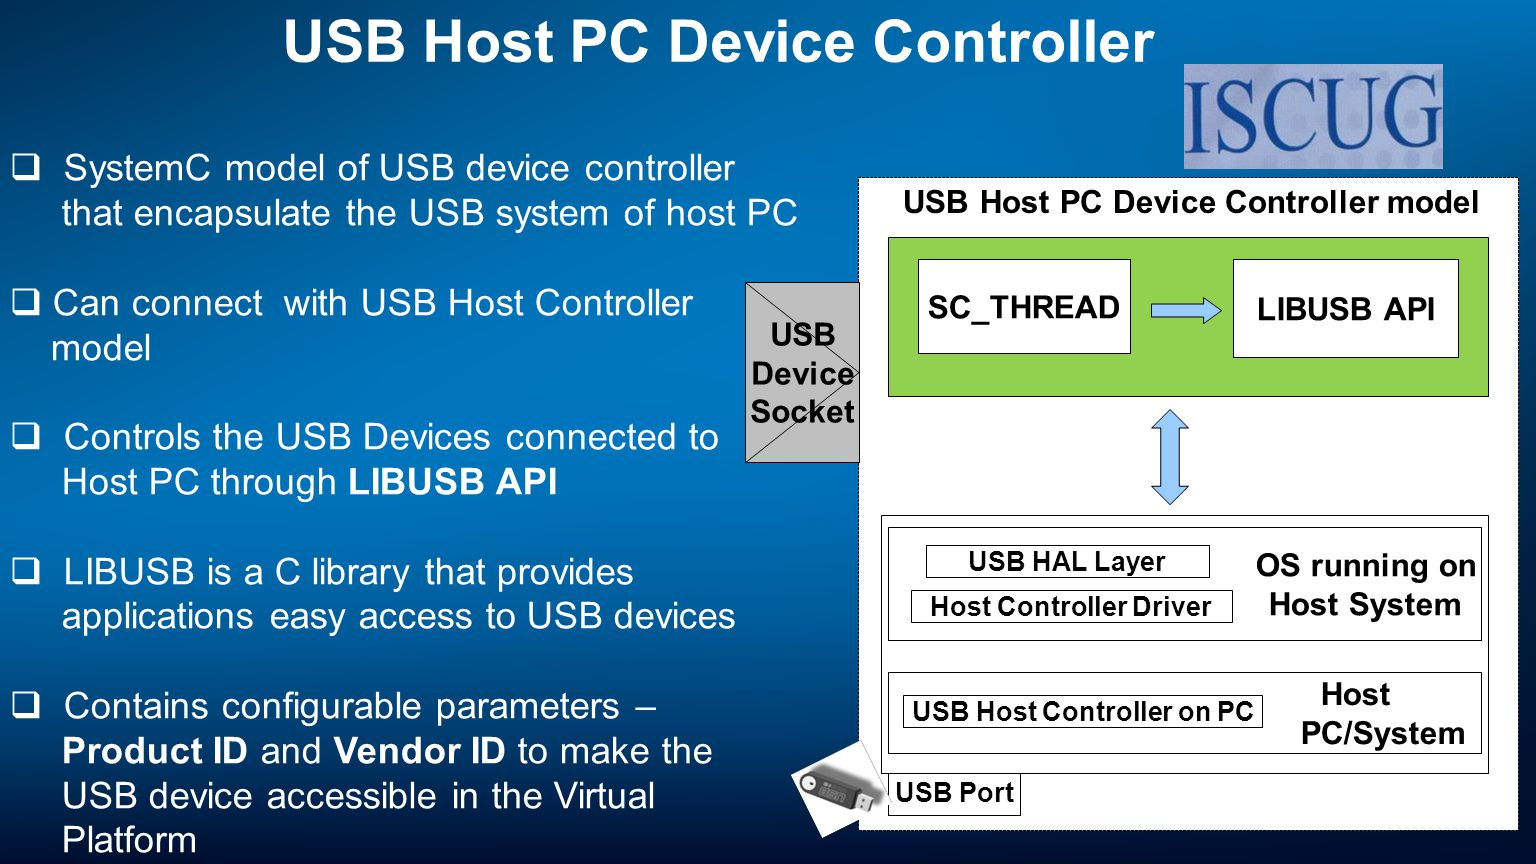 USB Host PC Device Controller model USB Host PC Device Controller SystemC model of USB device controller that encapsulate the USB system of host PC Can connect with USB Host Controller model Controls the USB Devices connected to Host PC through LIBUSB API LIBUSB is a C library that provides applications easy access to USB devices Contains configurable parameters – Product ID and Vendor ID to make the USB device accessible in the Virtual Platform Supports Control, Bulk, Interrupt transfers USB Port Host PC/System USB Host Controller on PC OS running on Host System Host Controller Driver USB HAL Layer USB Device Socket SC_THREAD LIBUSB API